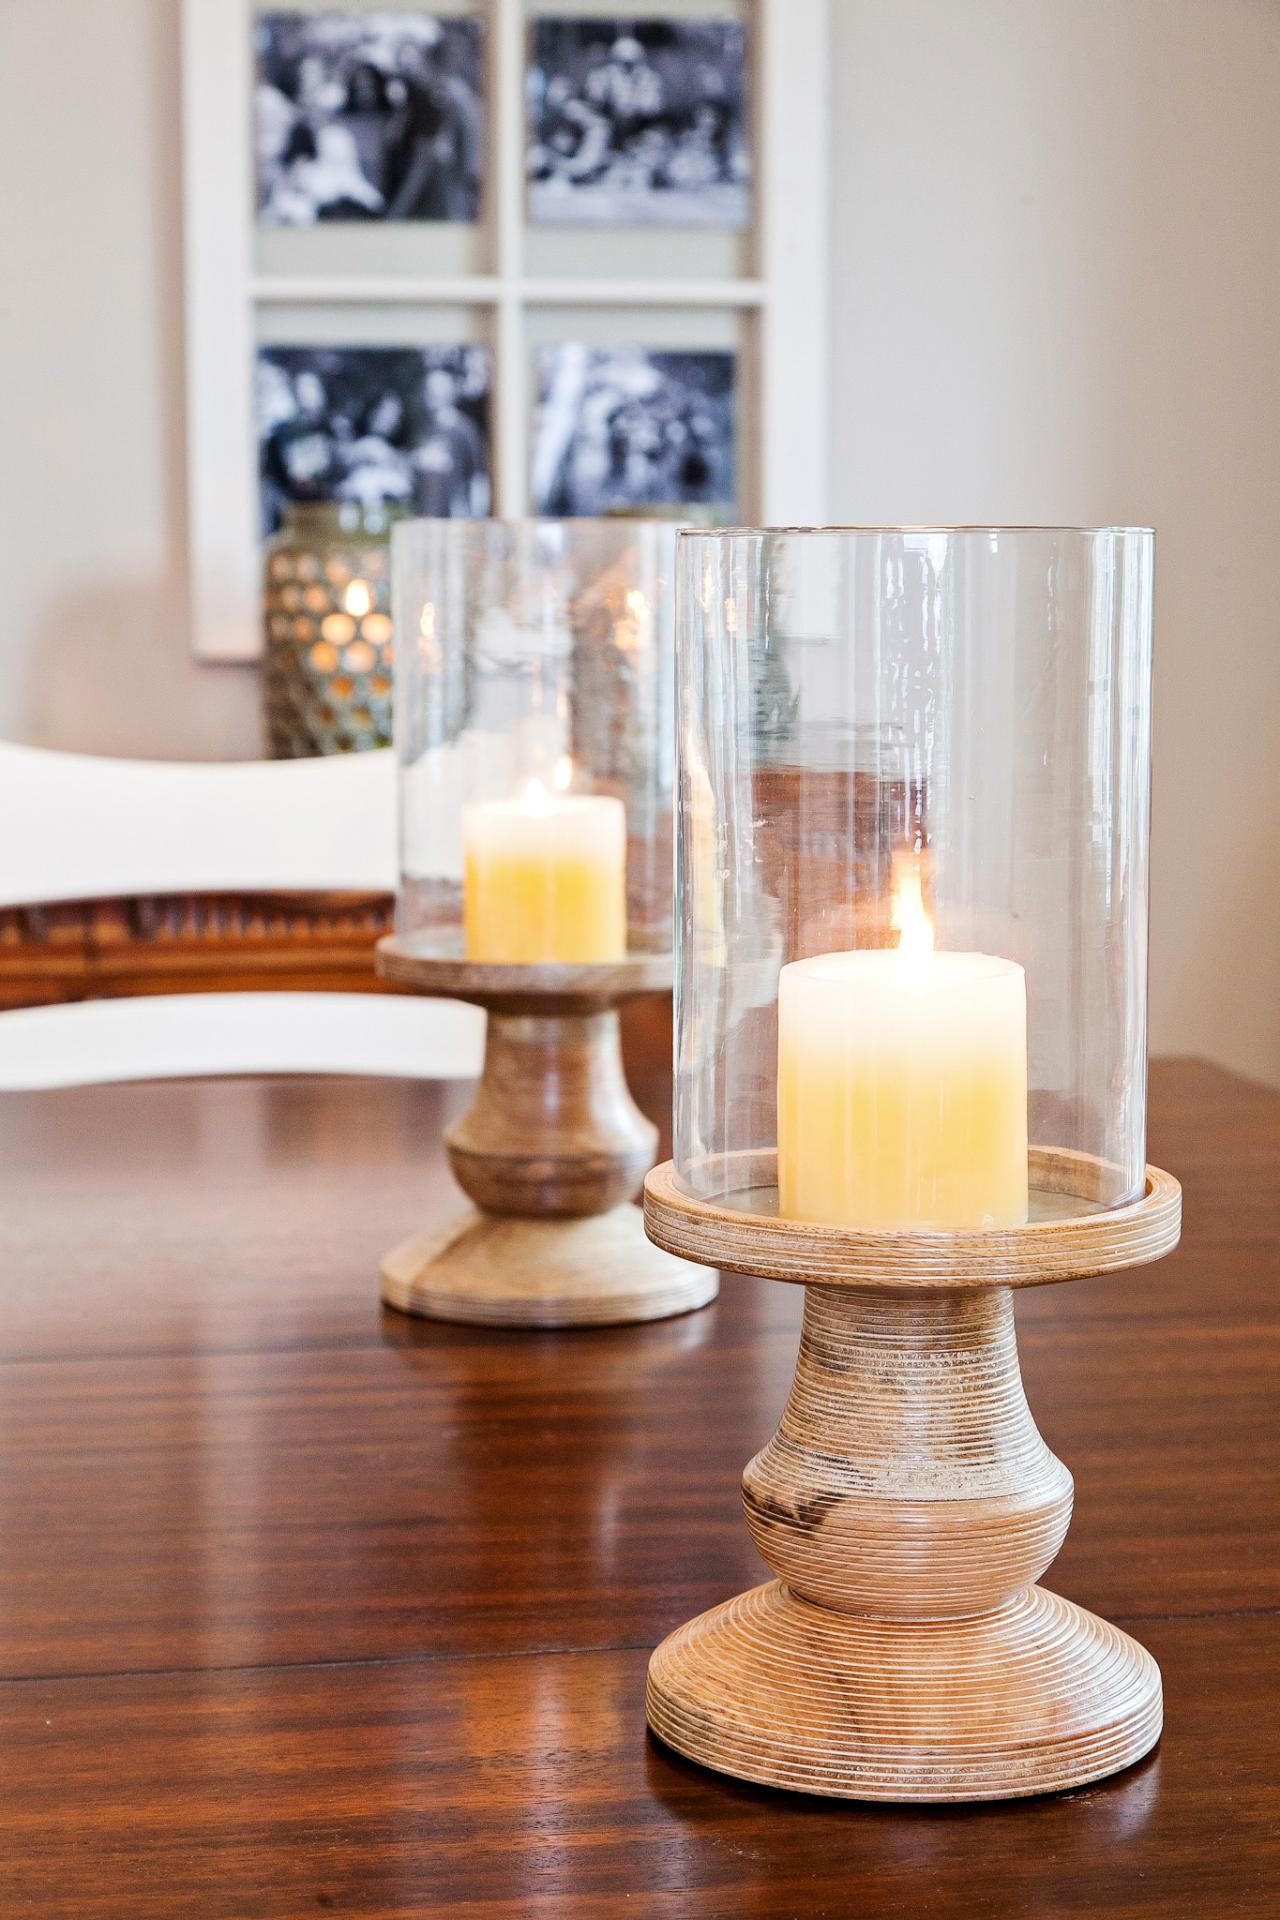 As Seen On Rehab Addict Host Nicole Curtis Placed Candles In The Center Of Dining Room CenterpieceDining